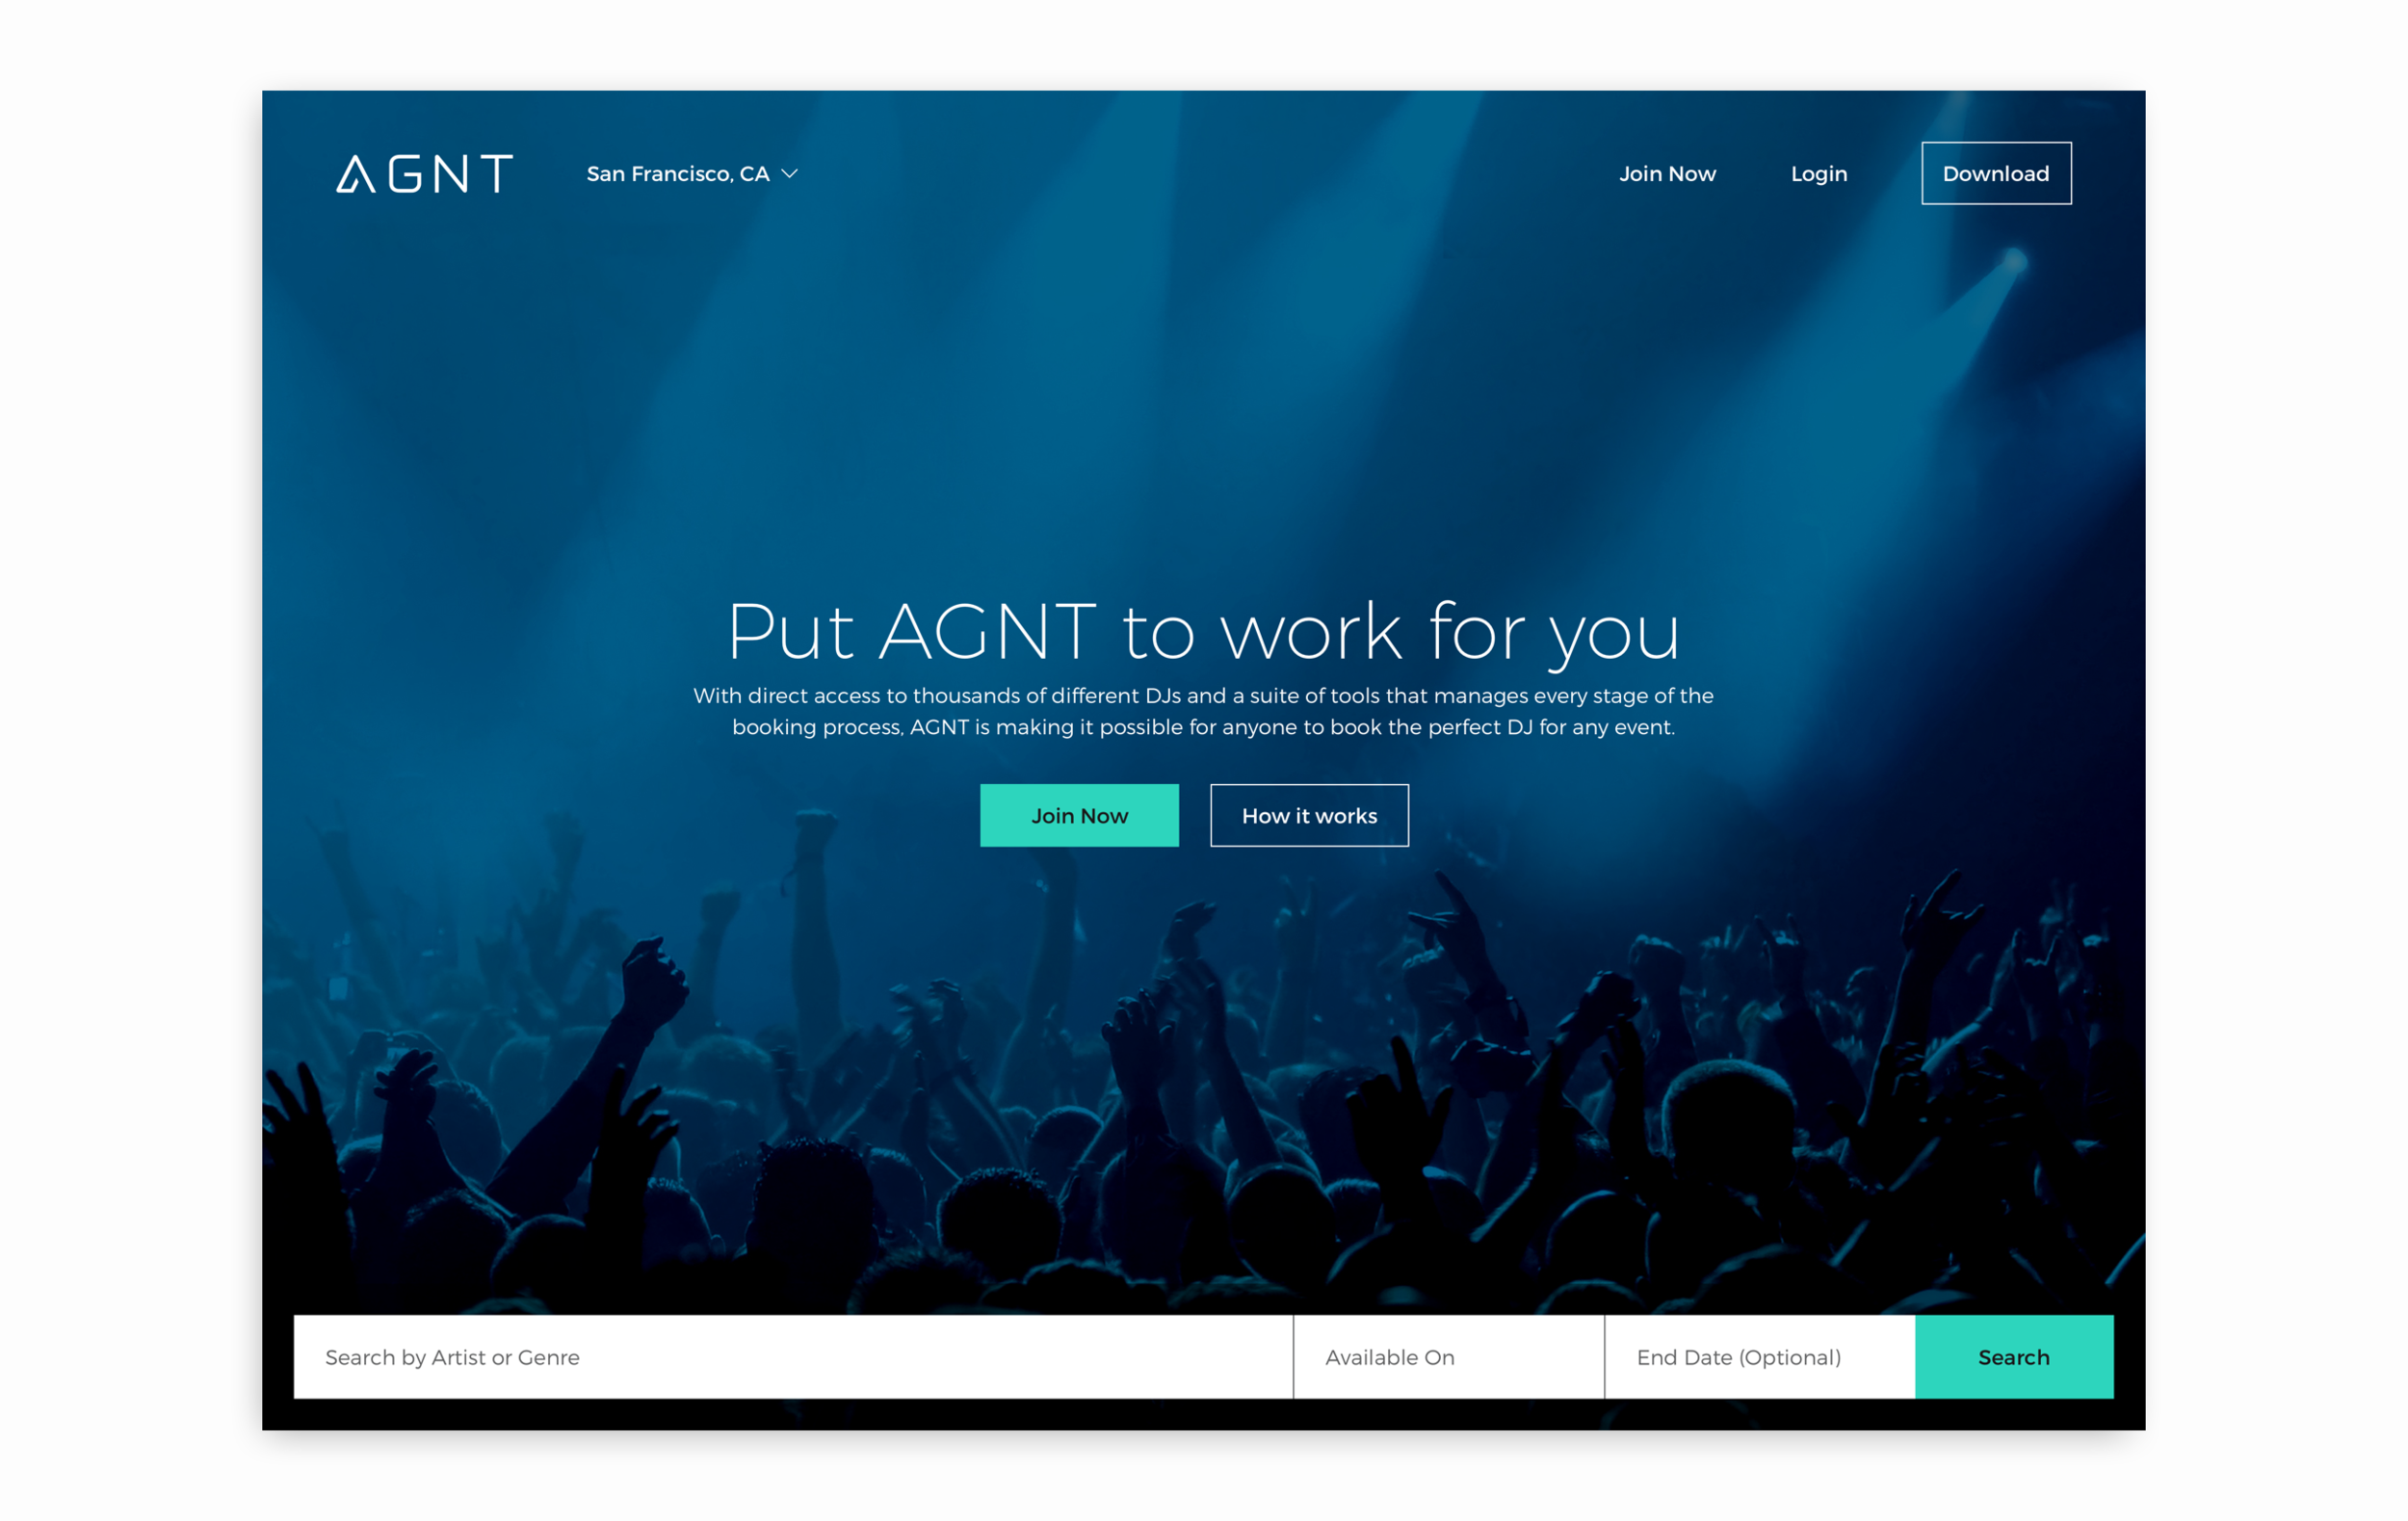 agnt_landing page.png